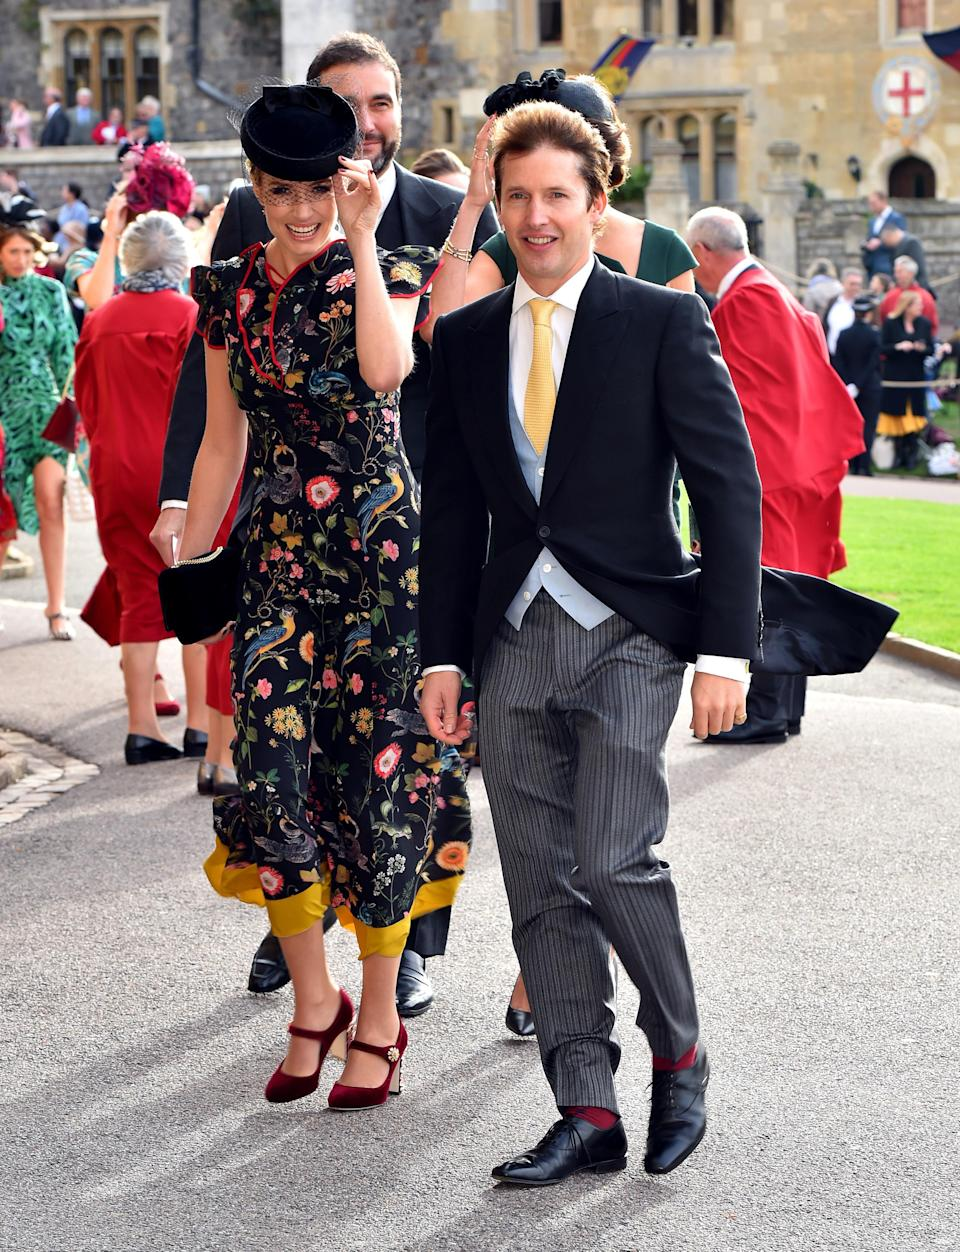 James Blunt arrives with wife <span>Sofia Wellesley.</span> (Photo: Getty Images)